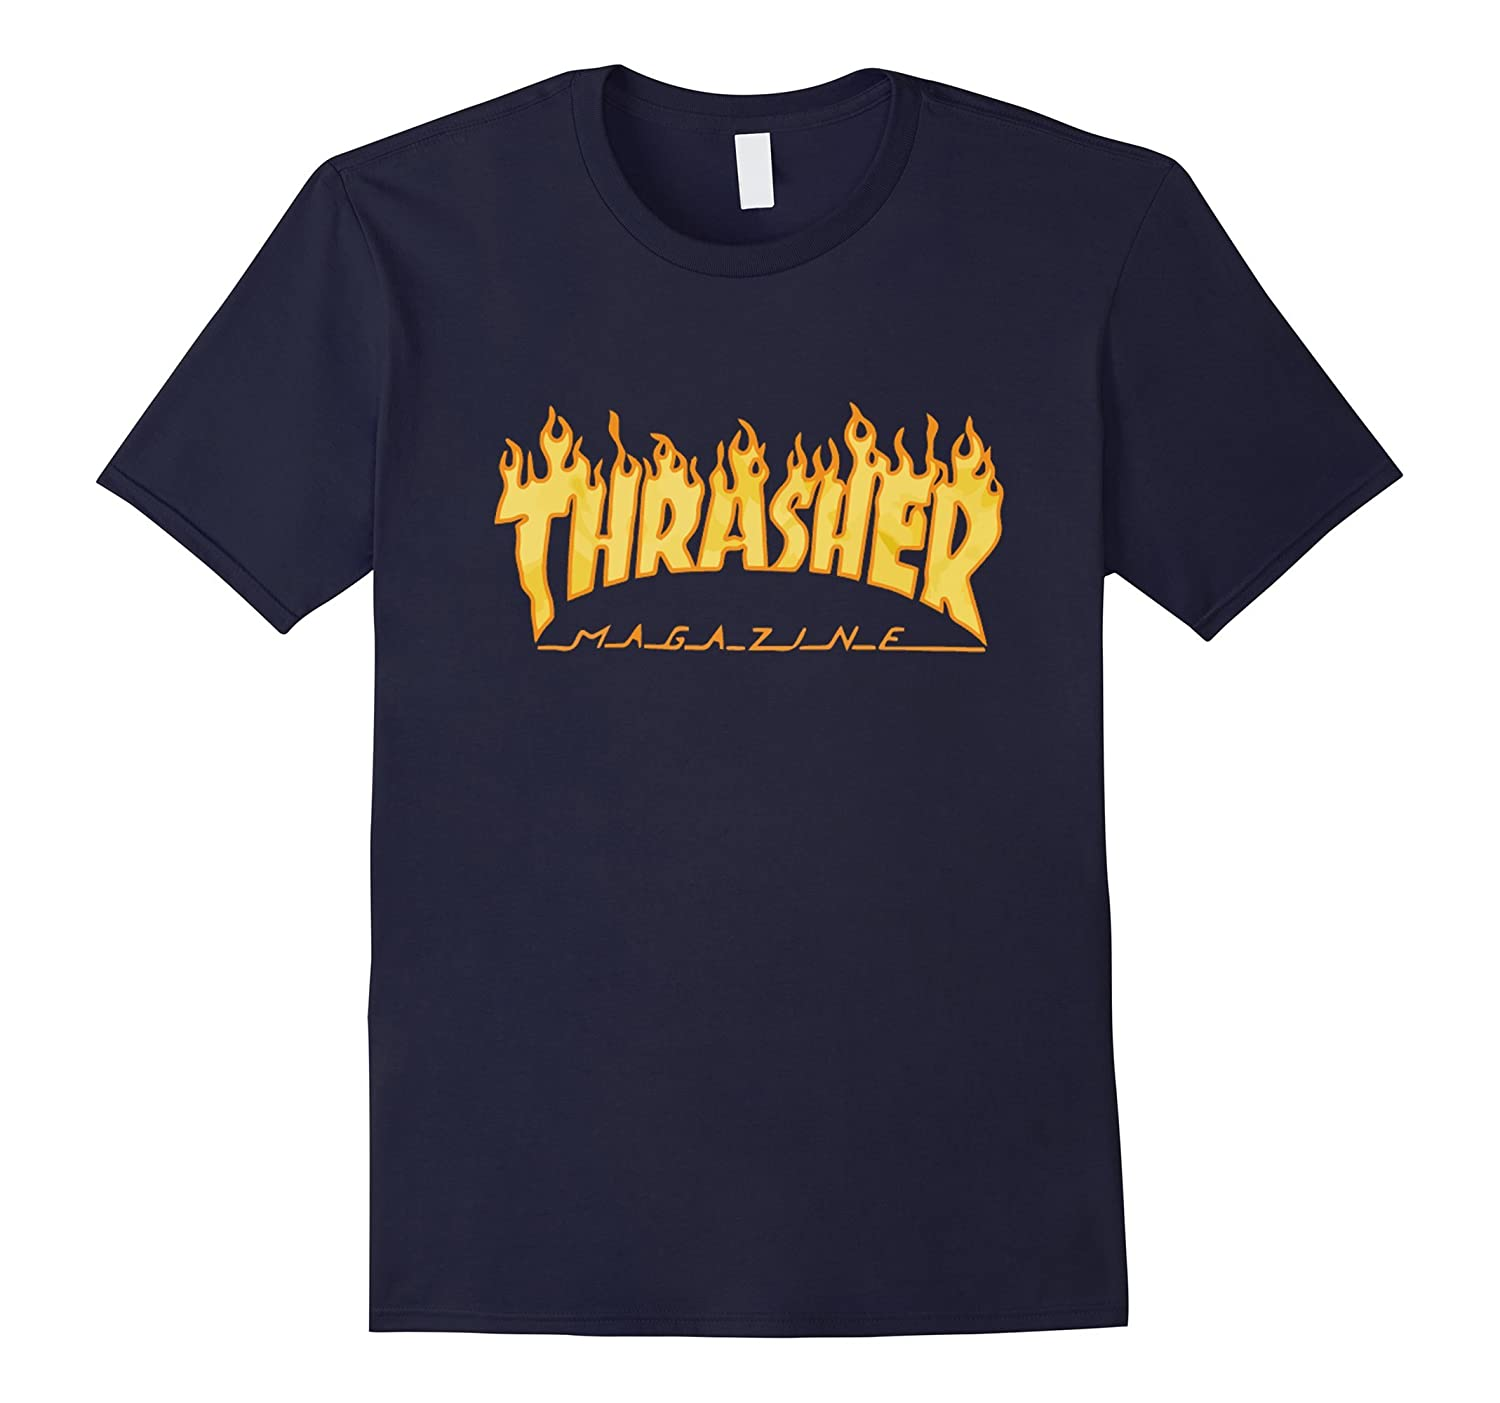 Th-rasher Flame Short Sleeve Skateboa-rd T-Shirt Black-BN